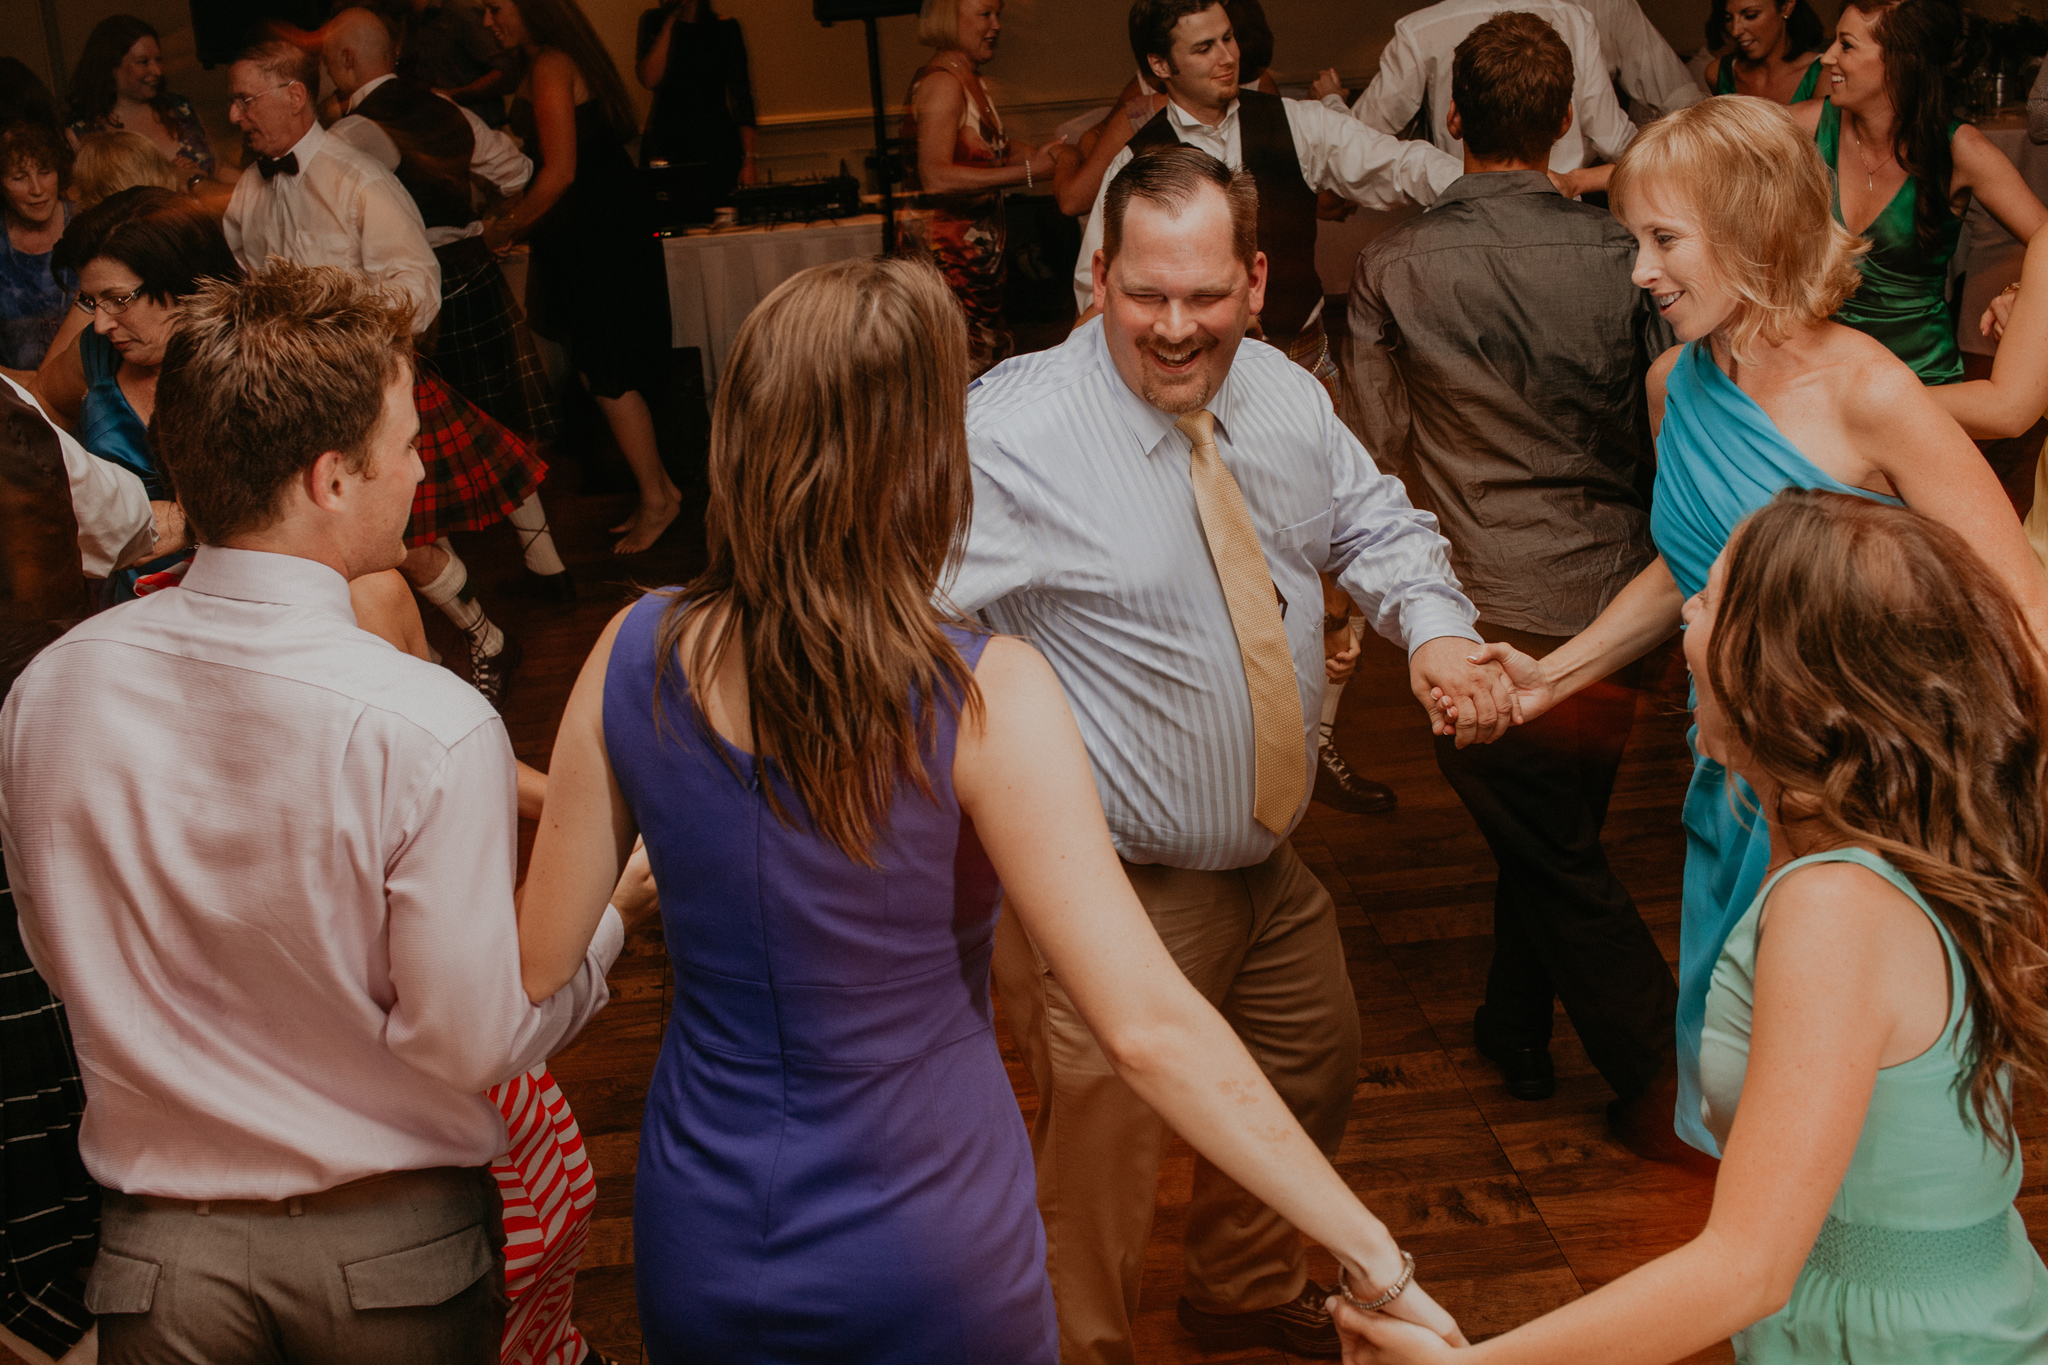 Guests dance at wedding during recpetion